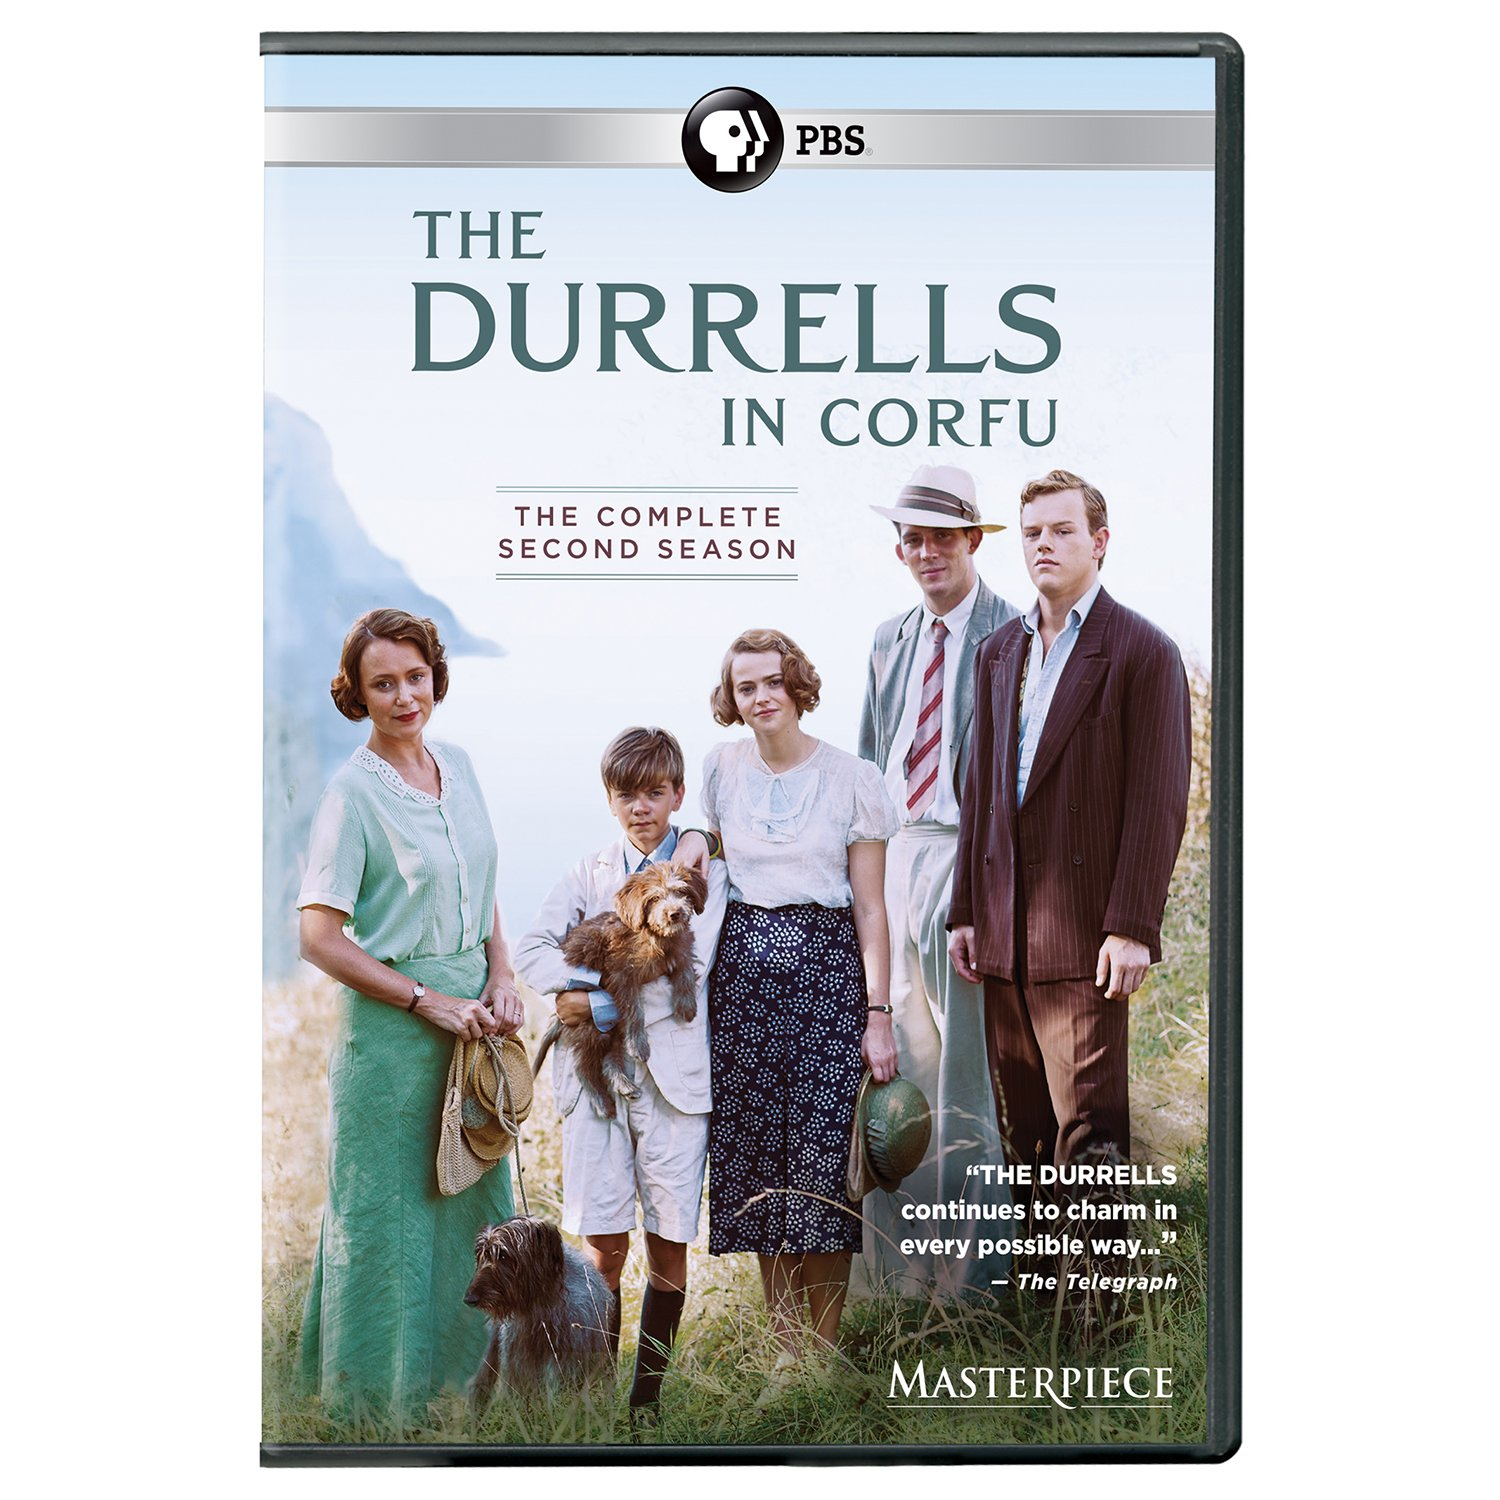 The Durrells in Corfu: Season 2